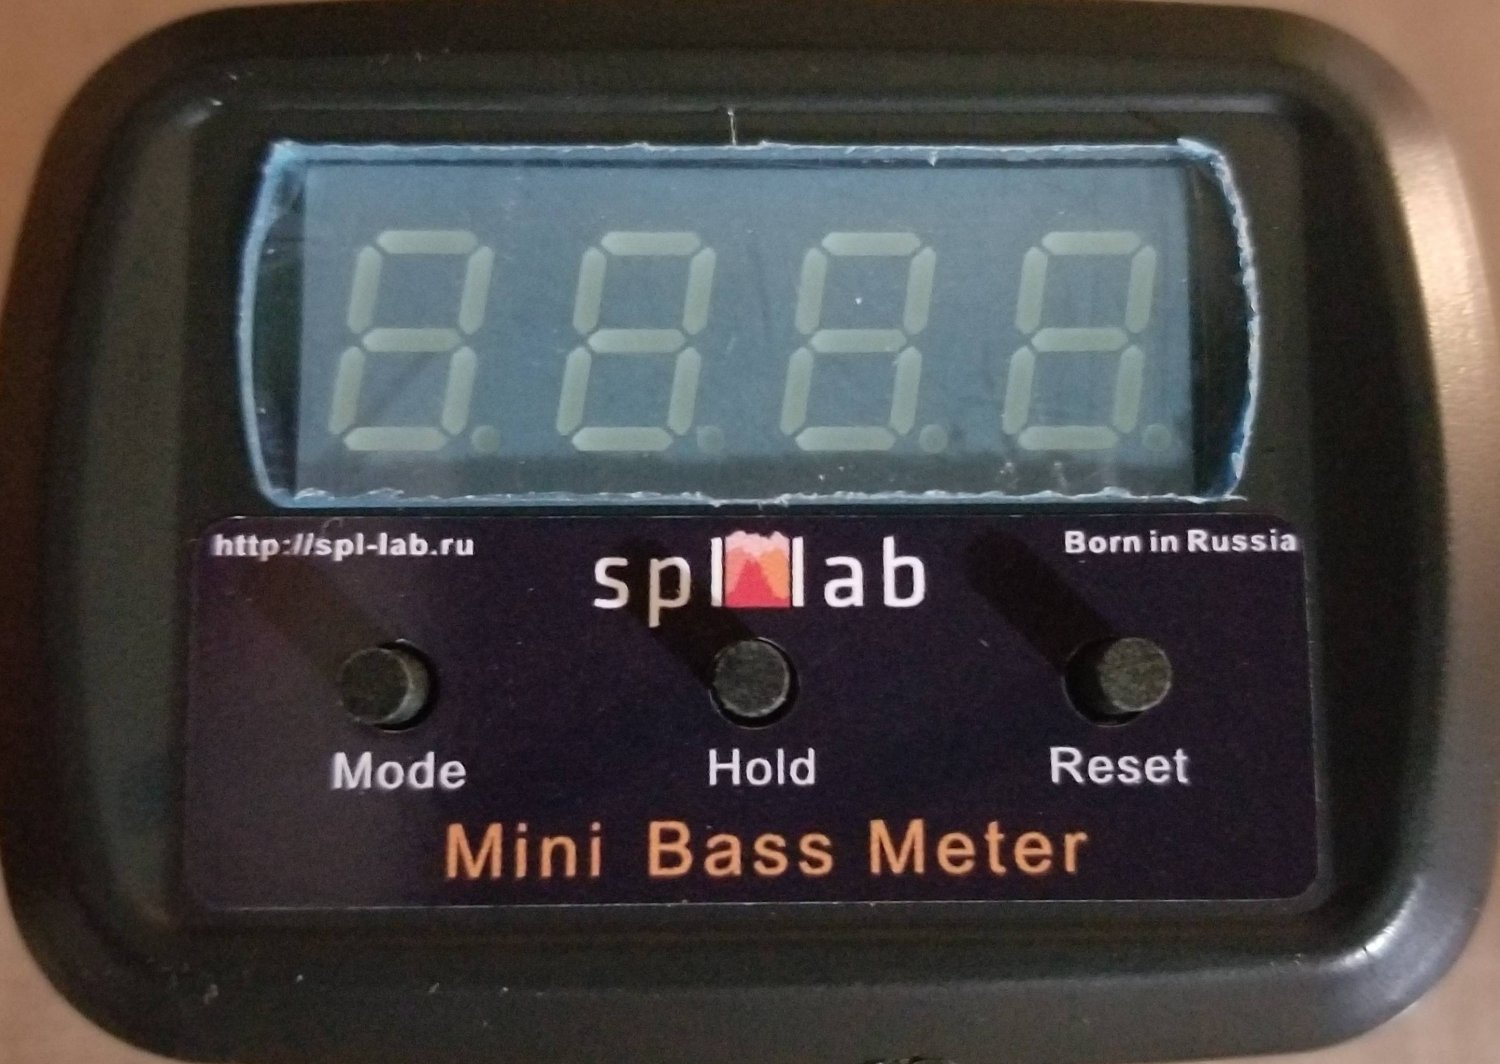 SPL-Lab Mini Bass Meter v2 SE-G